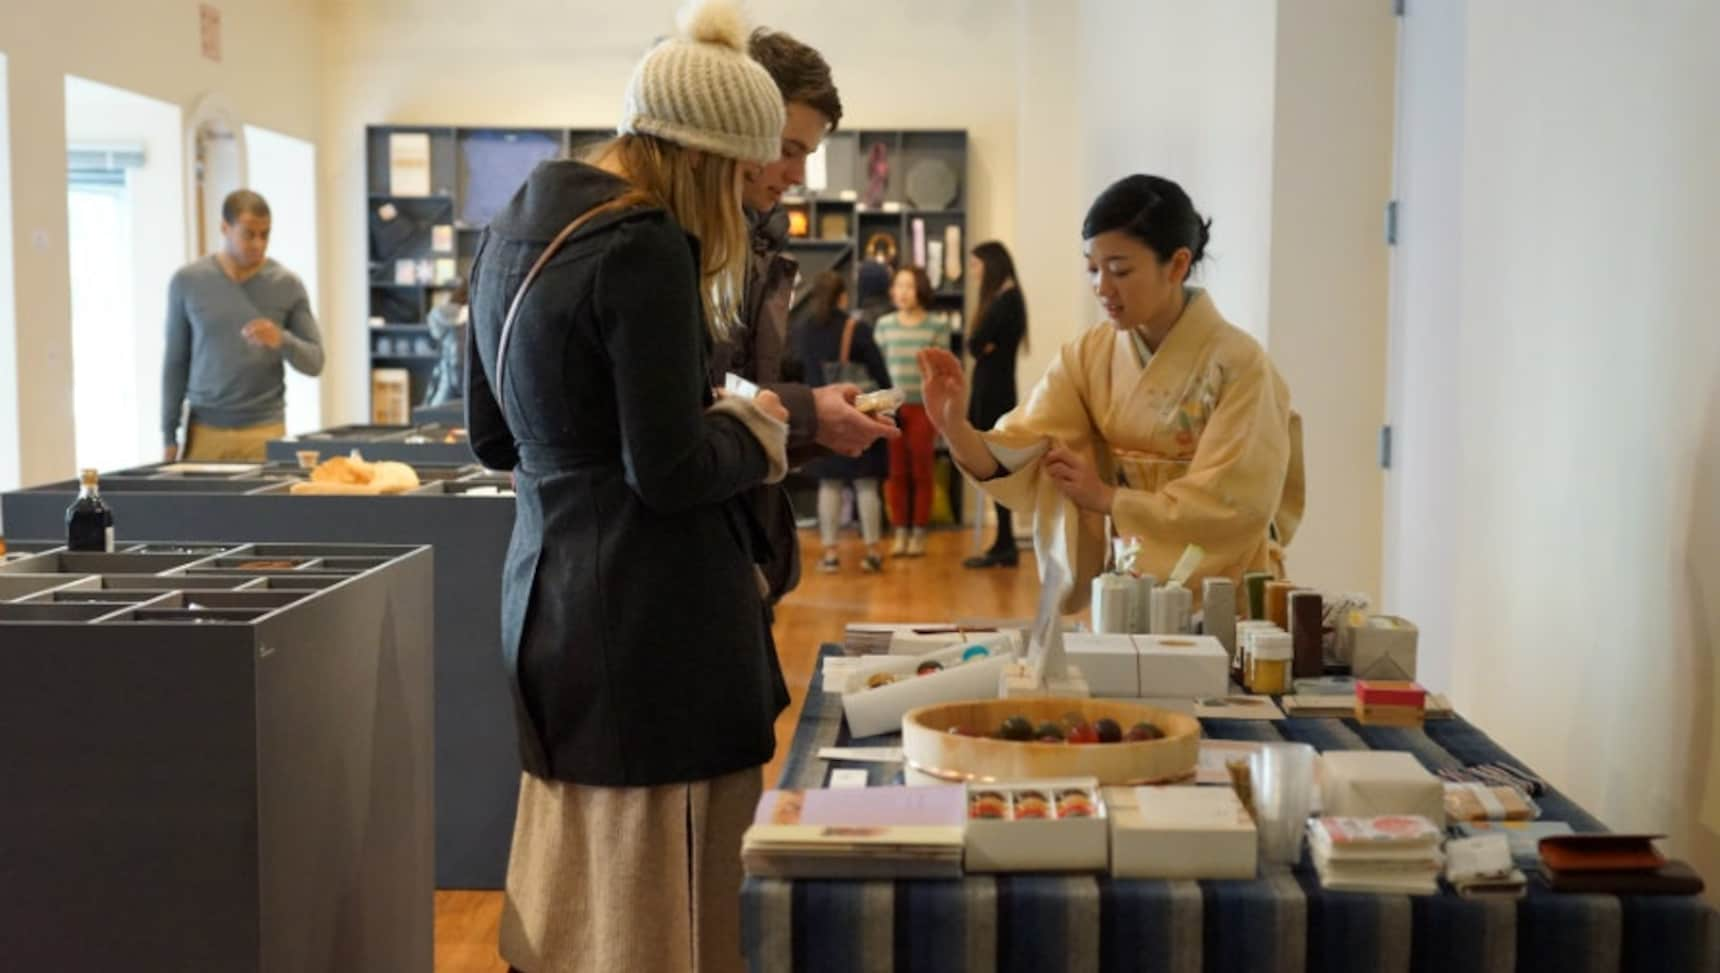 Get Sweets & Tea at The Wonder 500™ in NY!